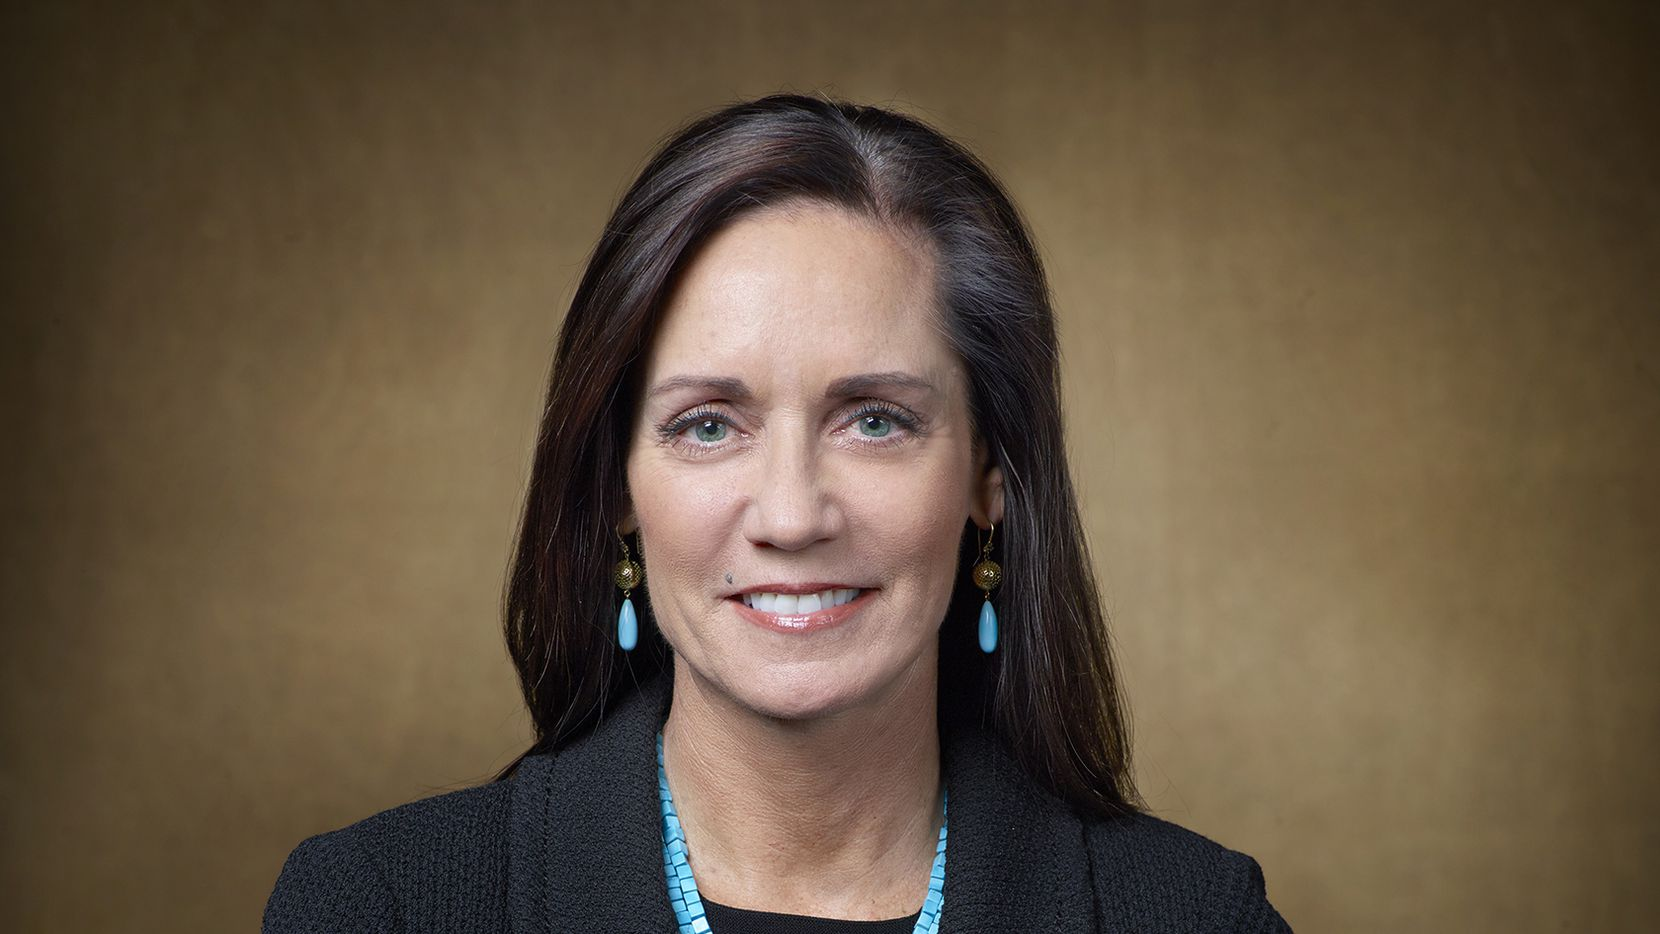 Barbara Smith will become CEO of Irving-based Commercial Metals Company on Sept. 1. She has been with the company since 2011.